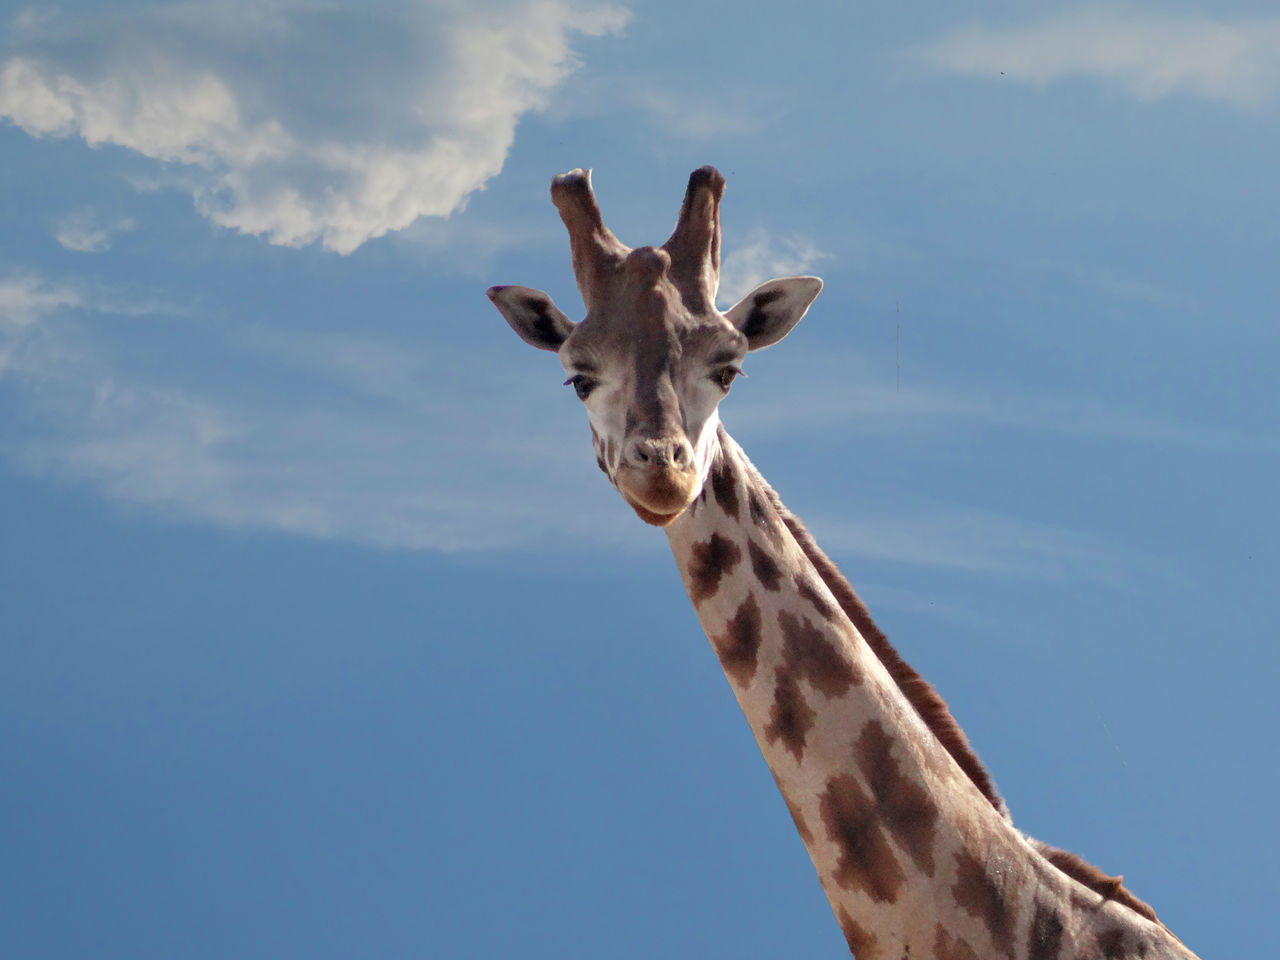 sky, one animal, cloud - sky, animal themes, low angle view, giraffe, portrait, looking at camera, mammal, day, outdoors, no people, animals in the wild, nature, animal wildlife, beauty in nature, close-up